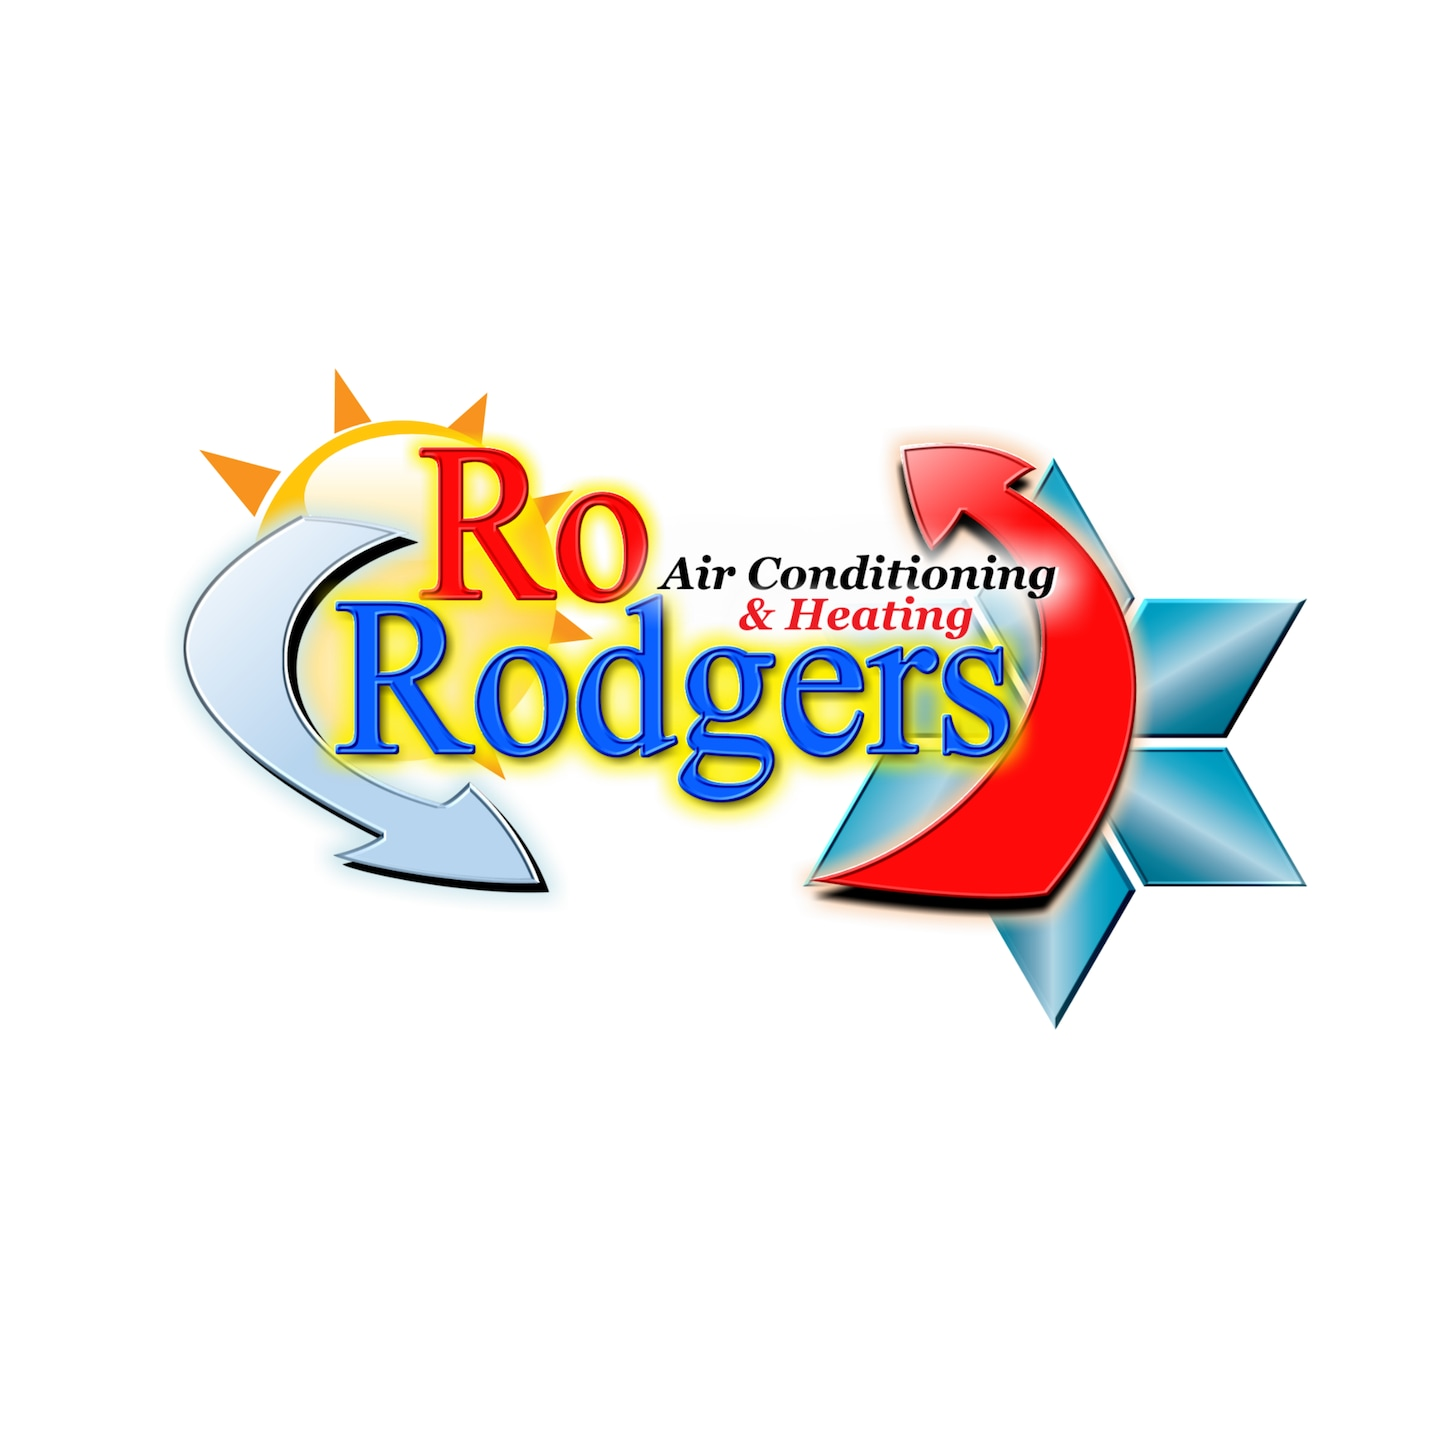 Ro Rodgers Air Conditioning & Heating LLC